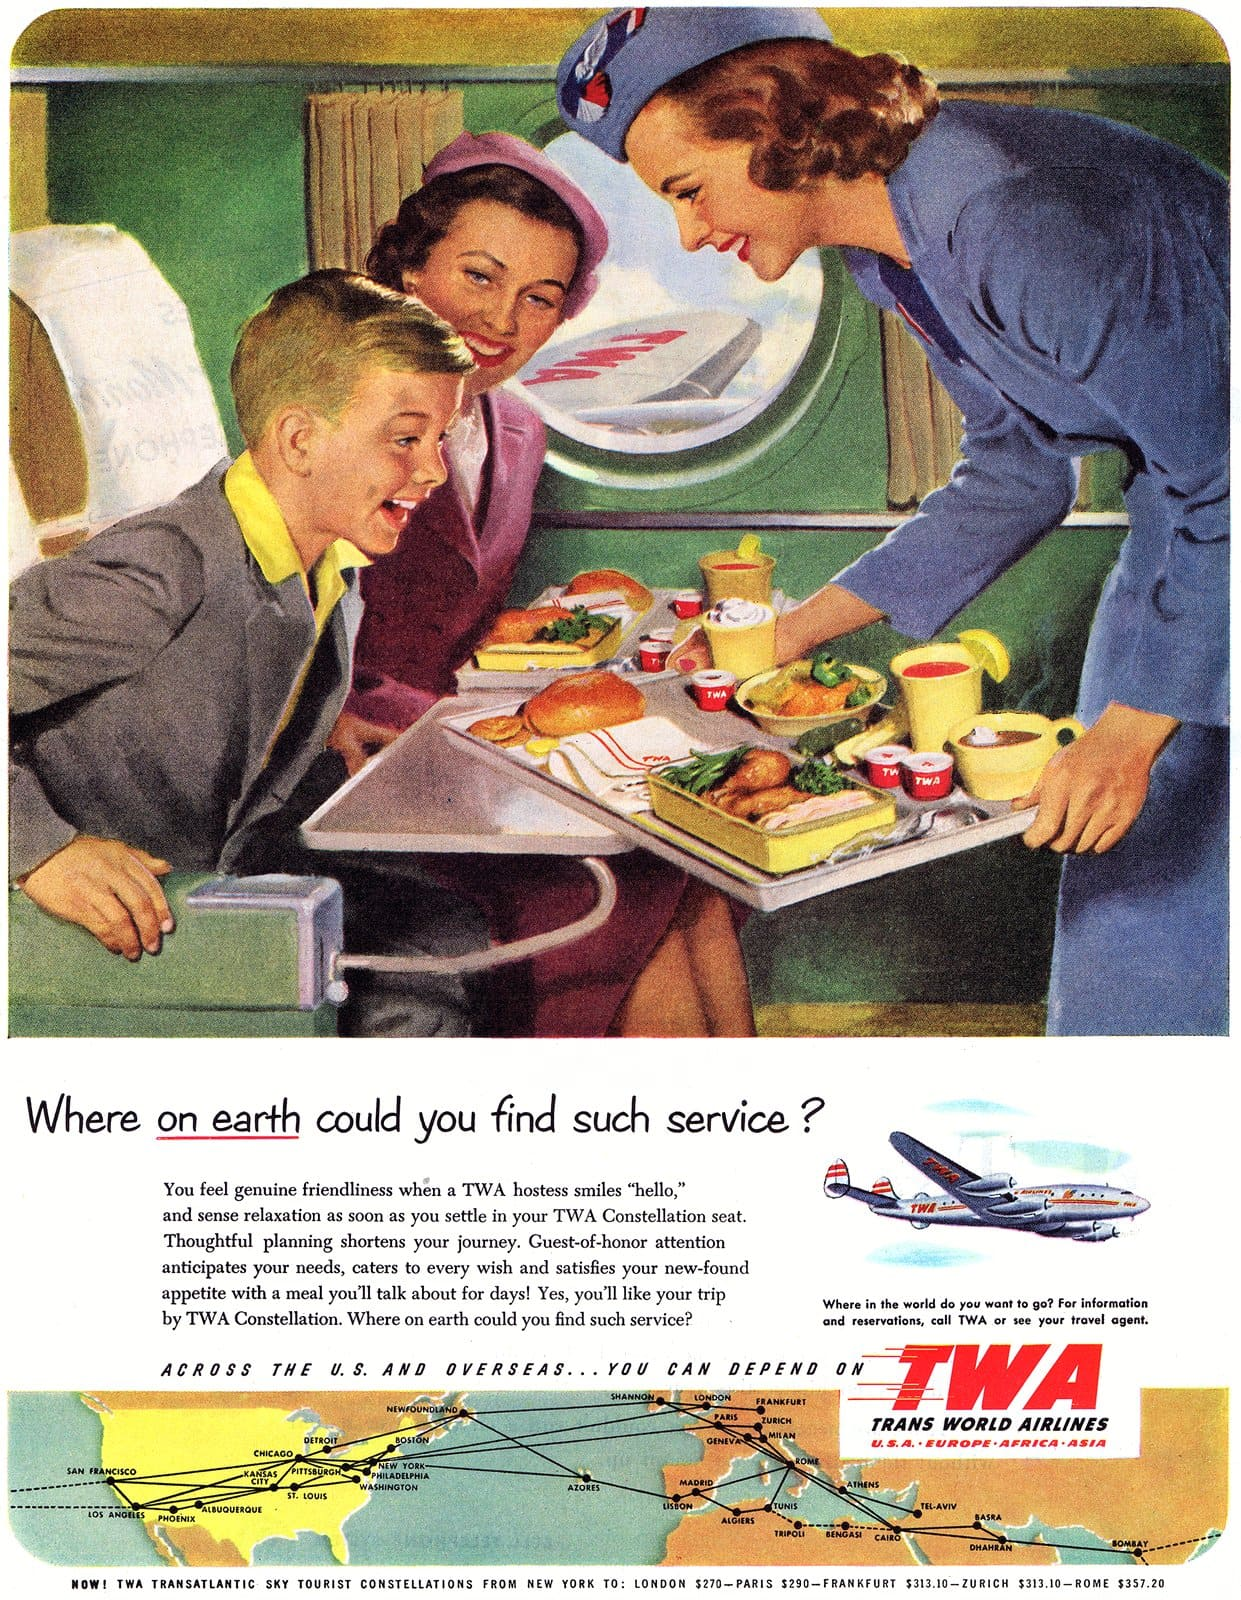 TWA Airlines service 1952